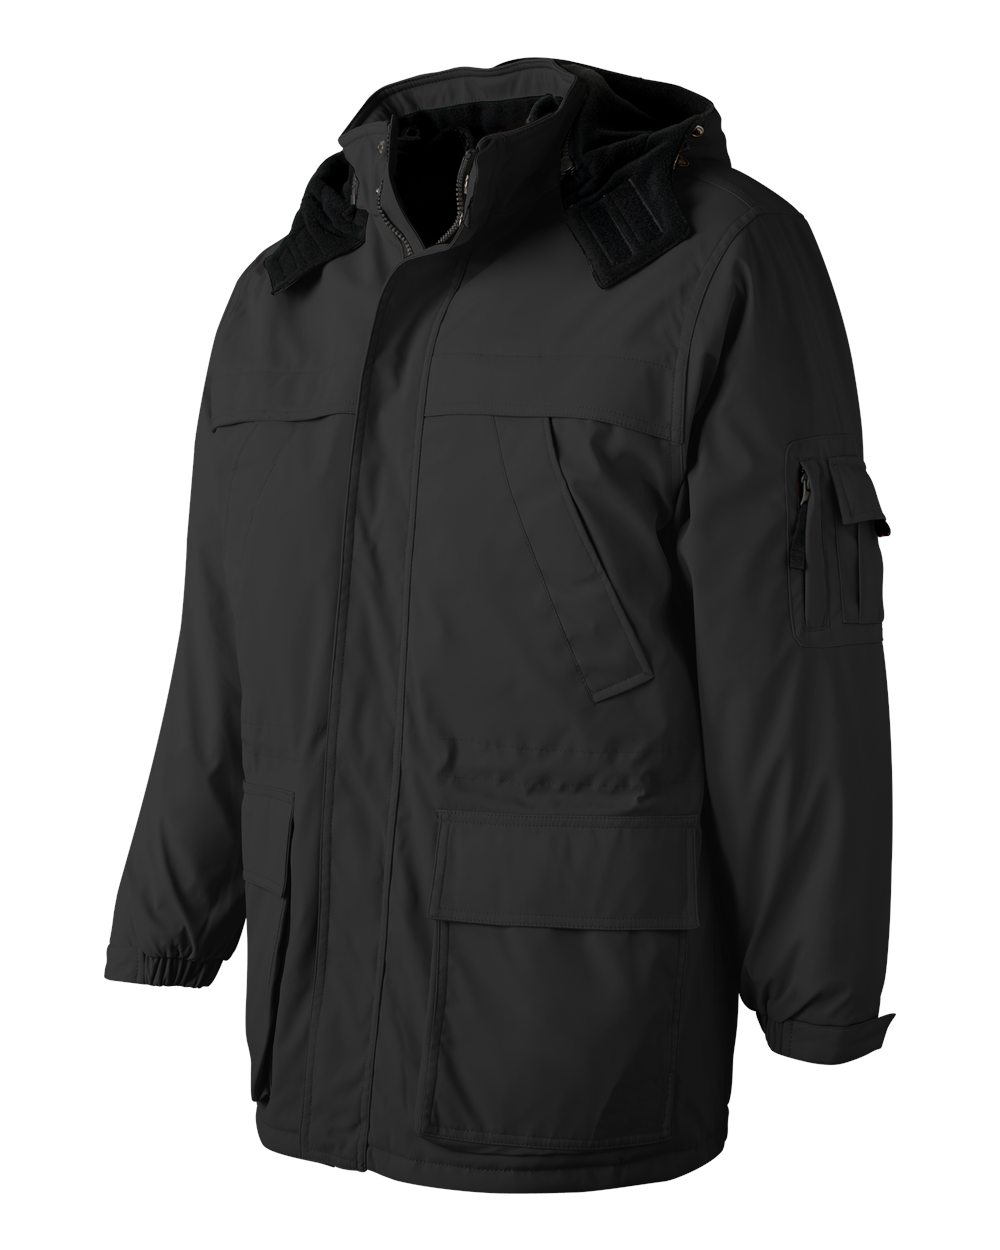 Weatherproof 6086 3-in-1 Systems Jacket